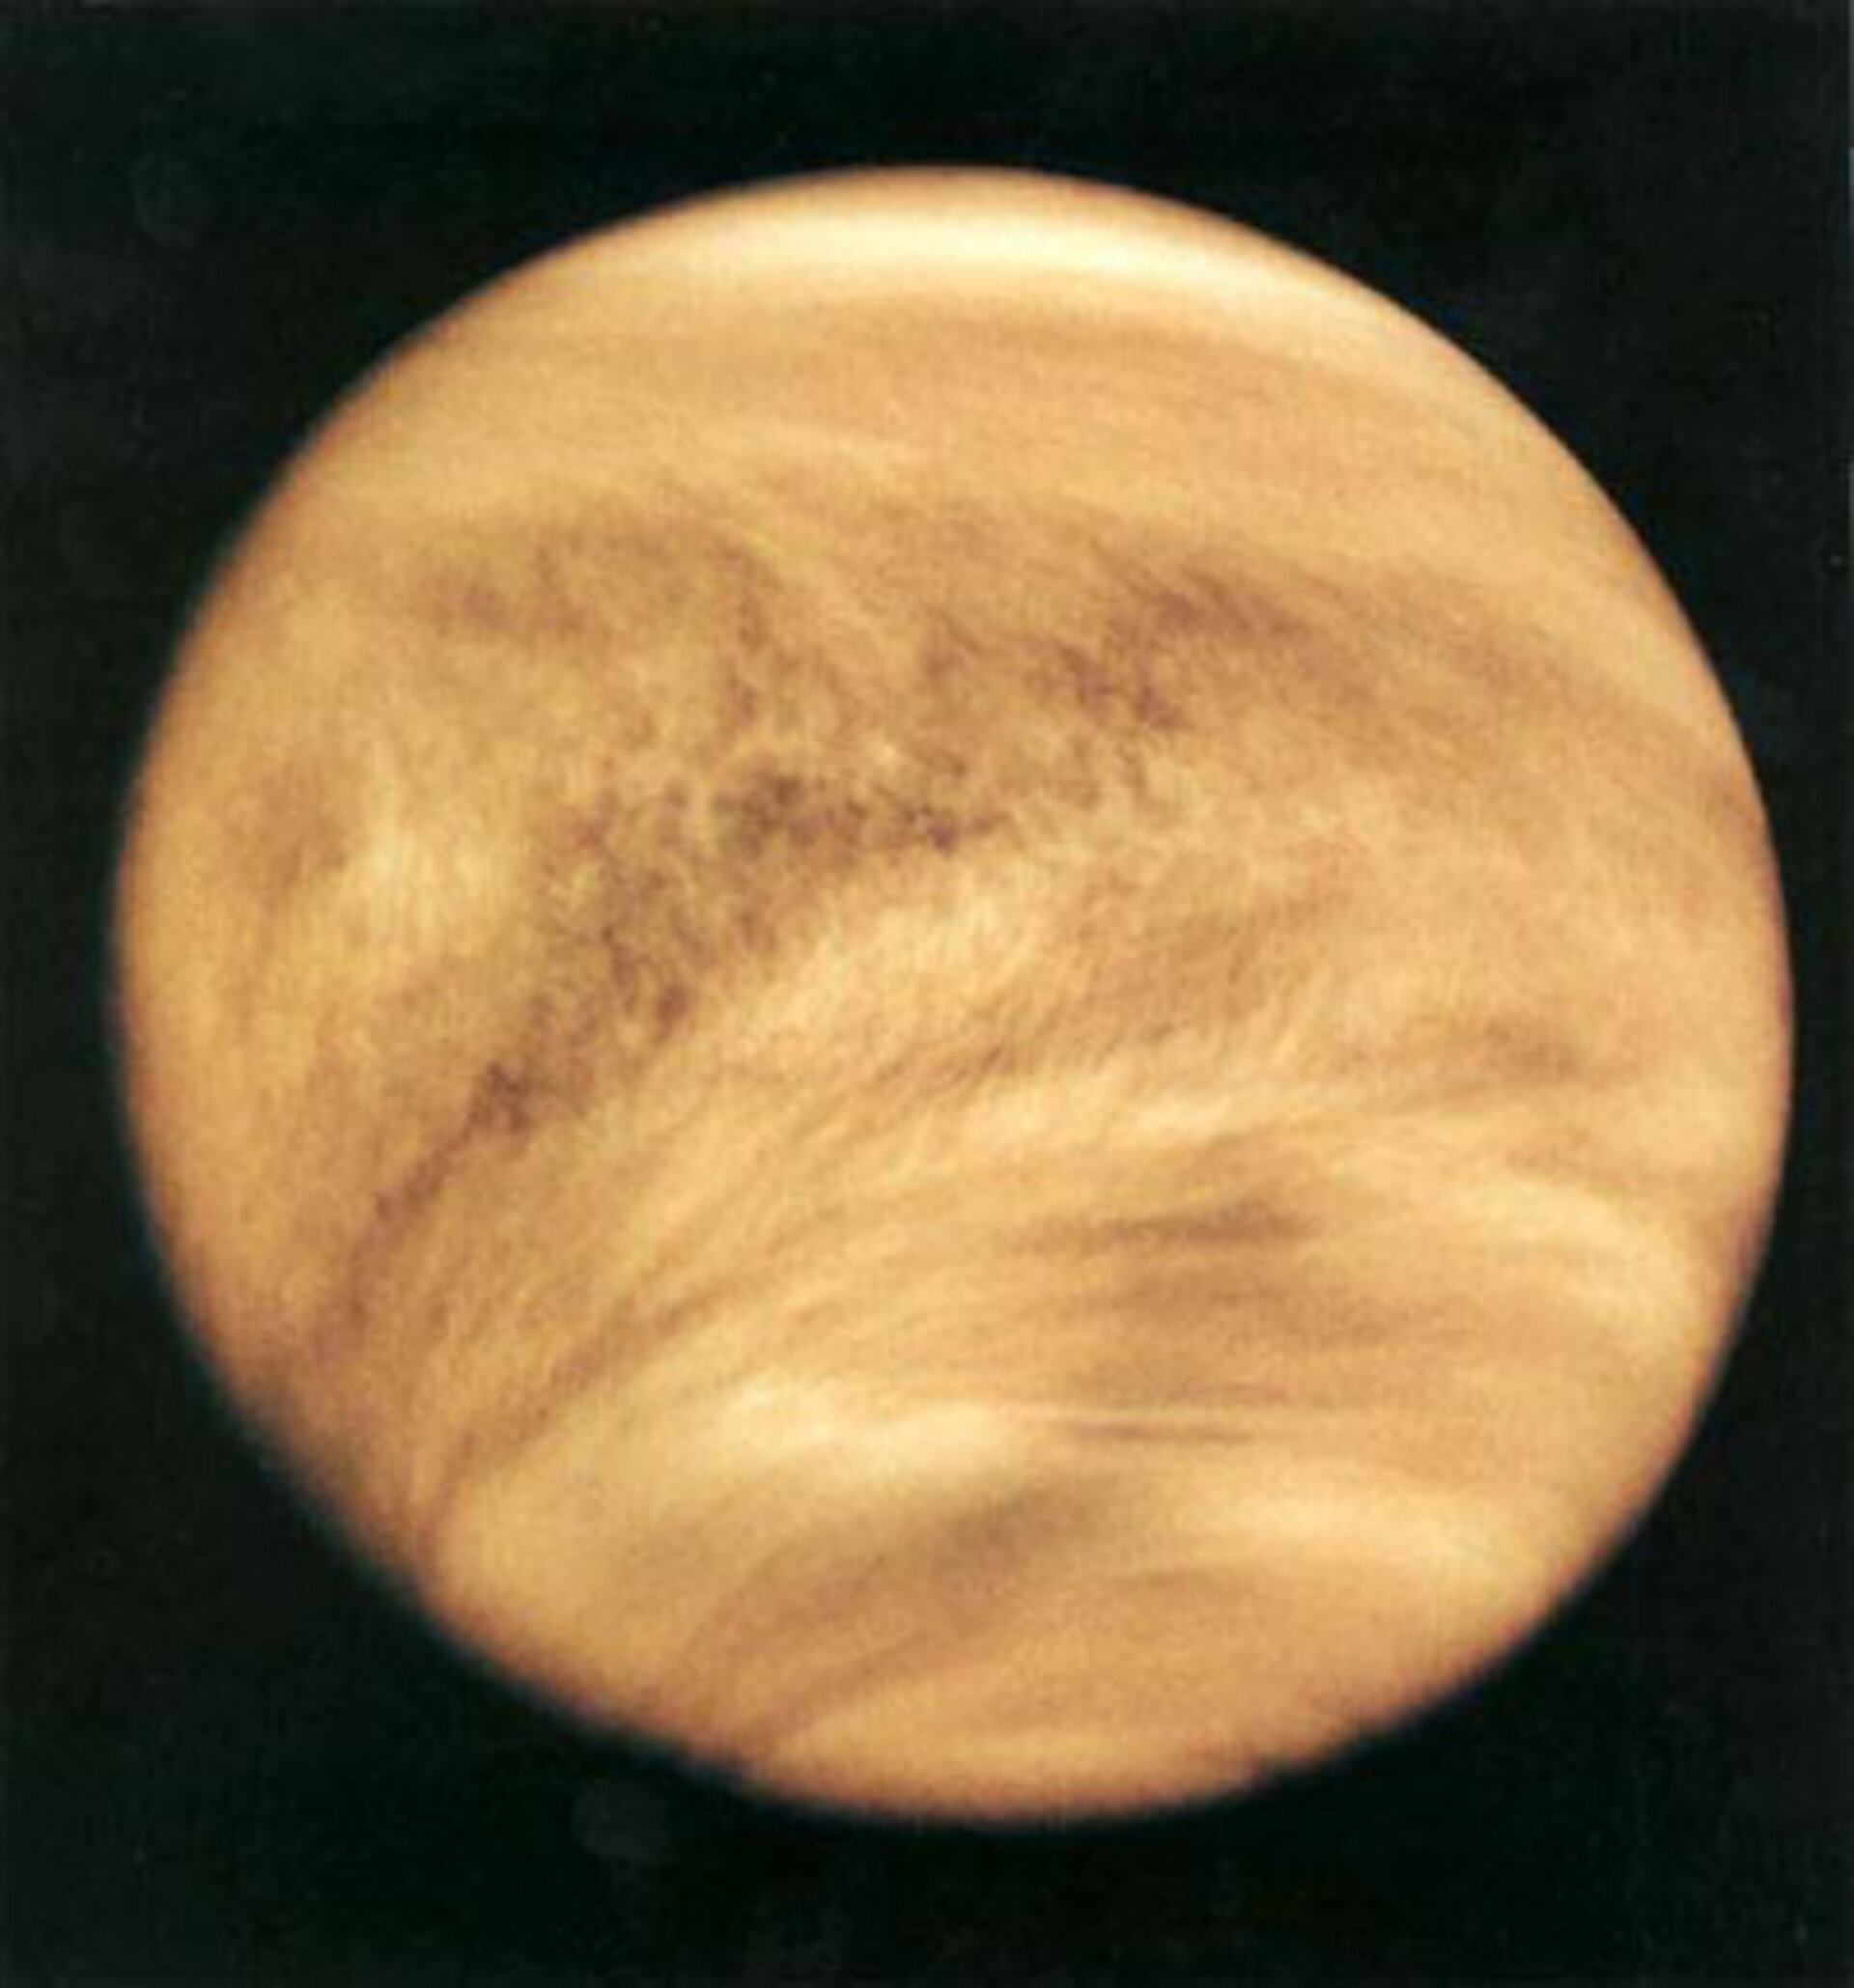 Venus, as seen by the Venus Express orbiter.